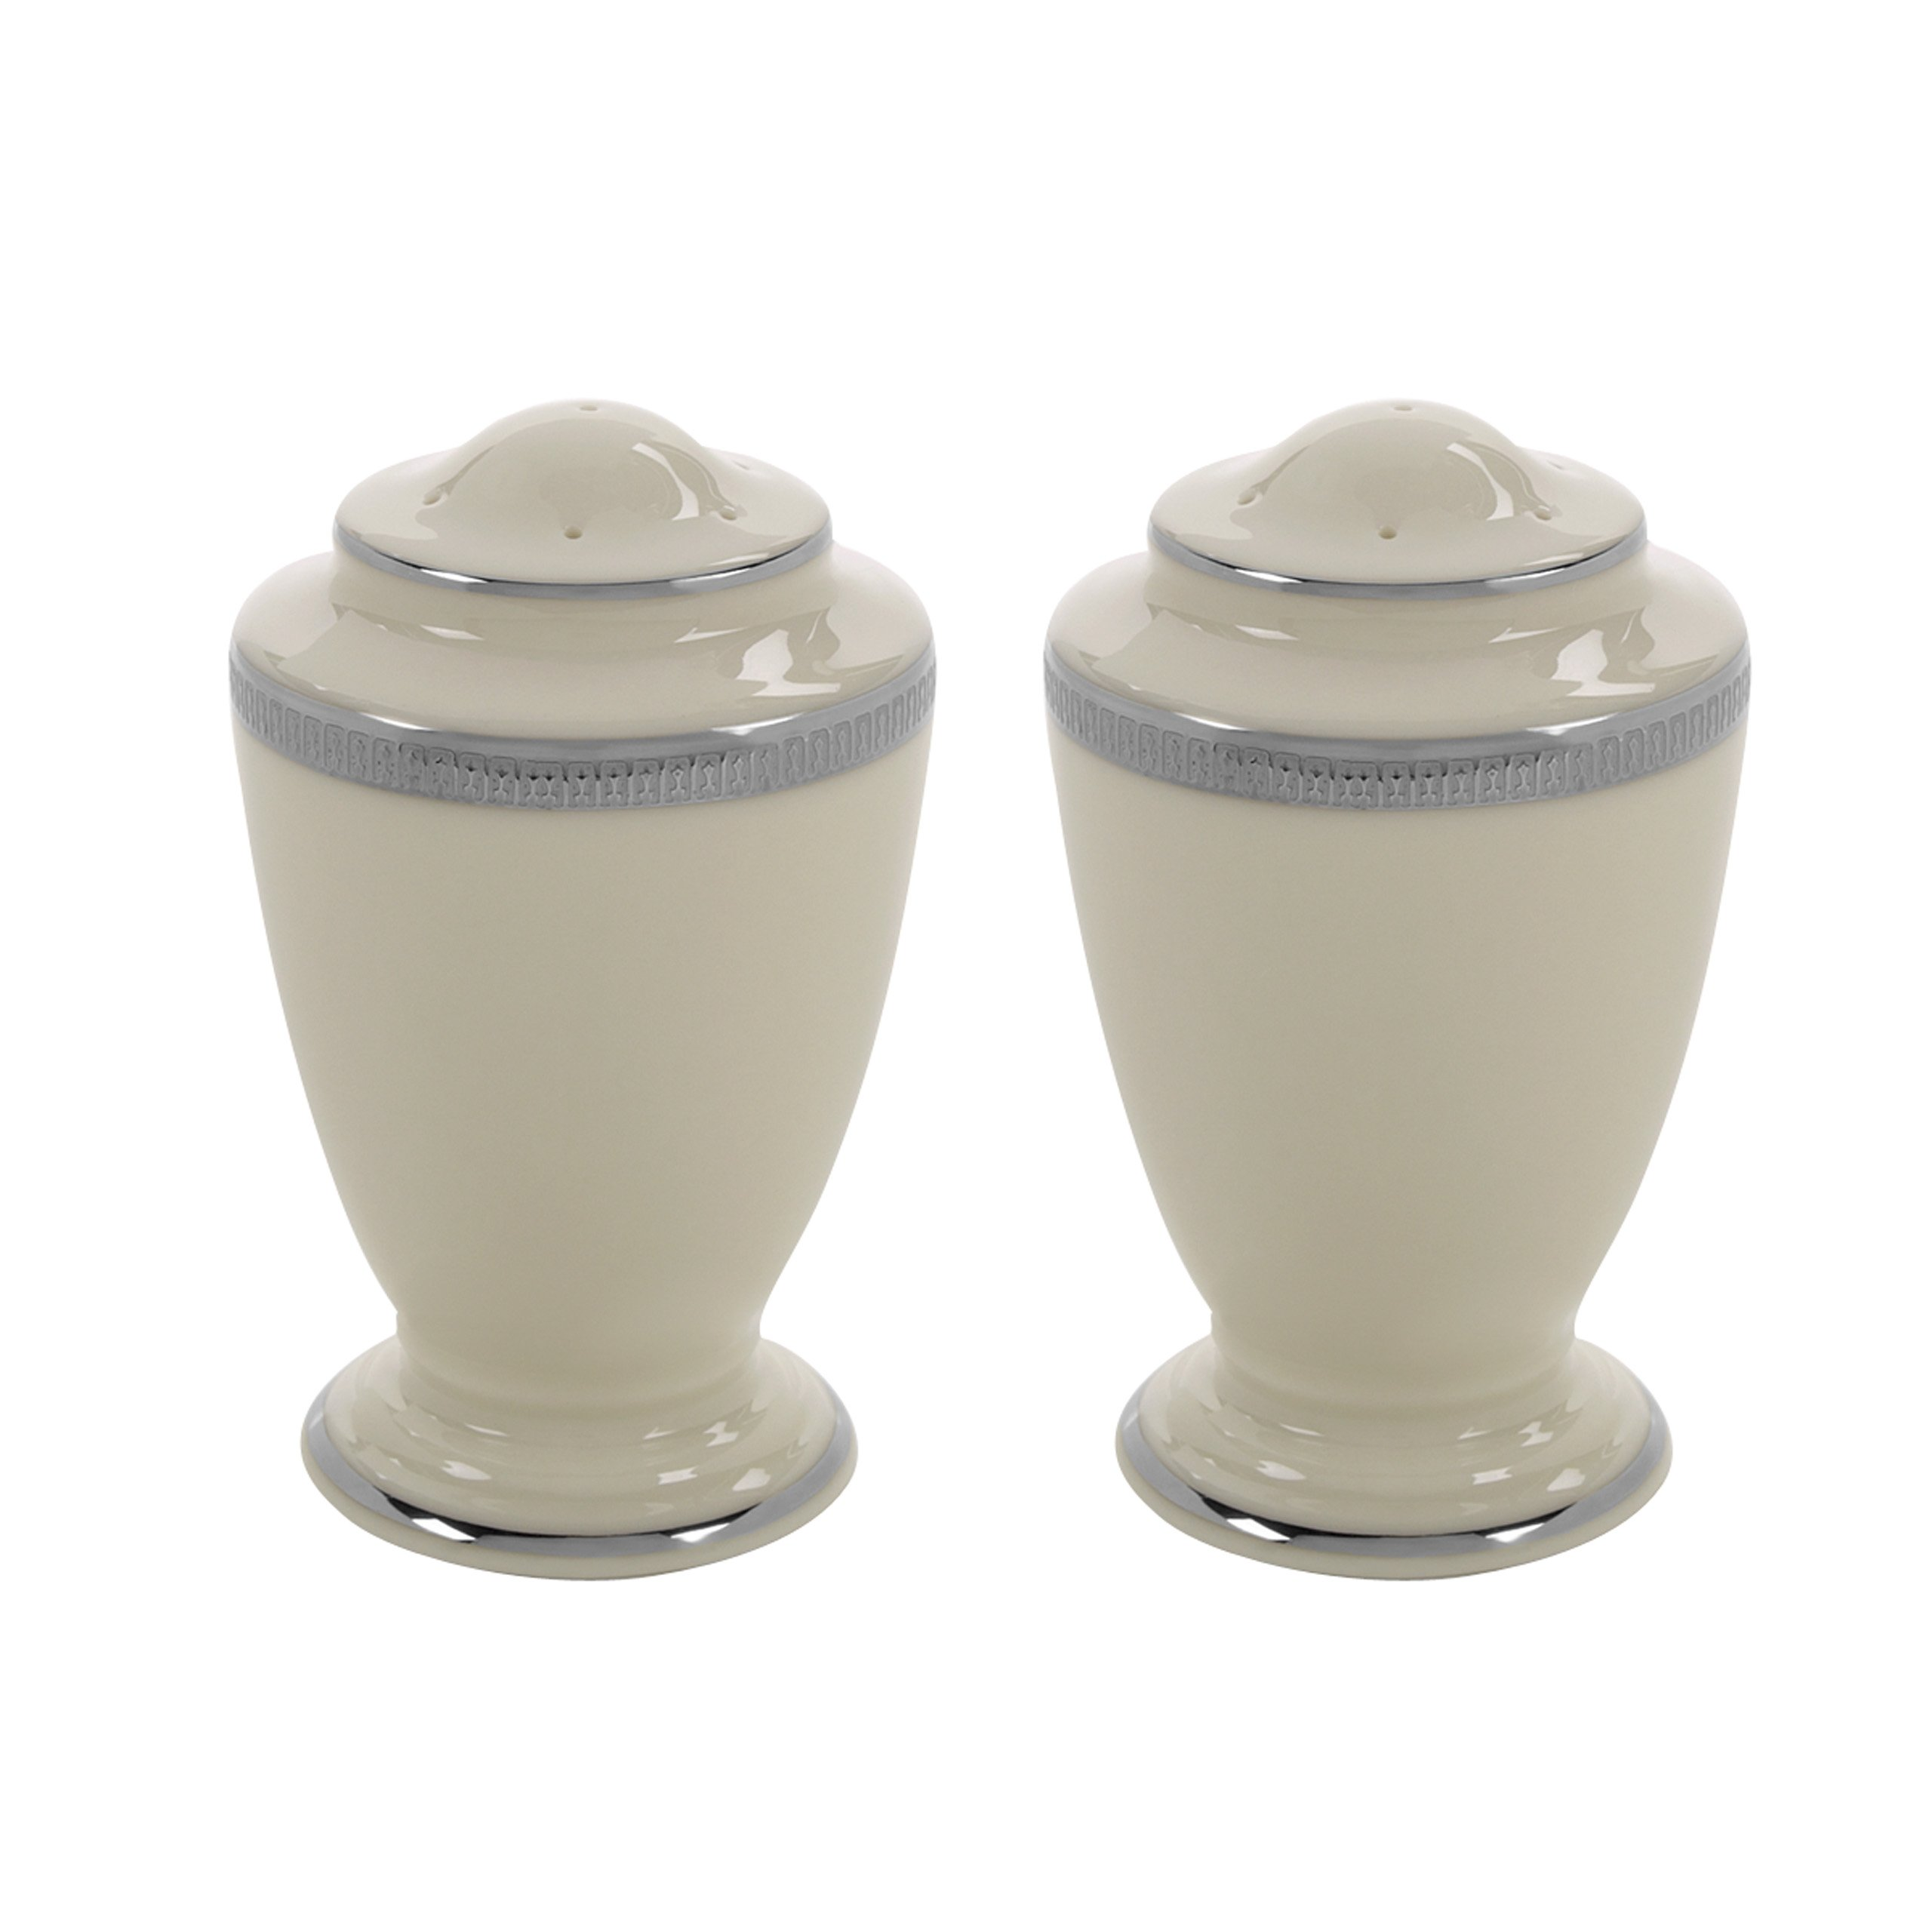 Lenox Tuxedo Platinum Salt and Pepper Set, Ivory by Lenox (Image #1)